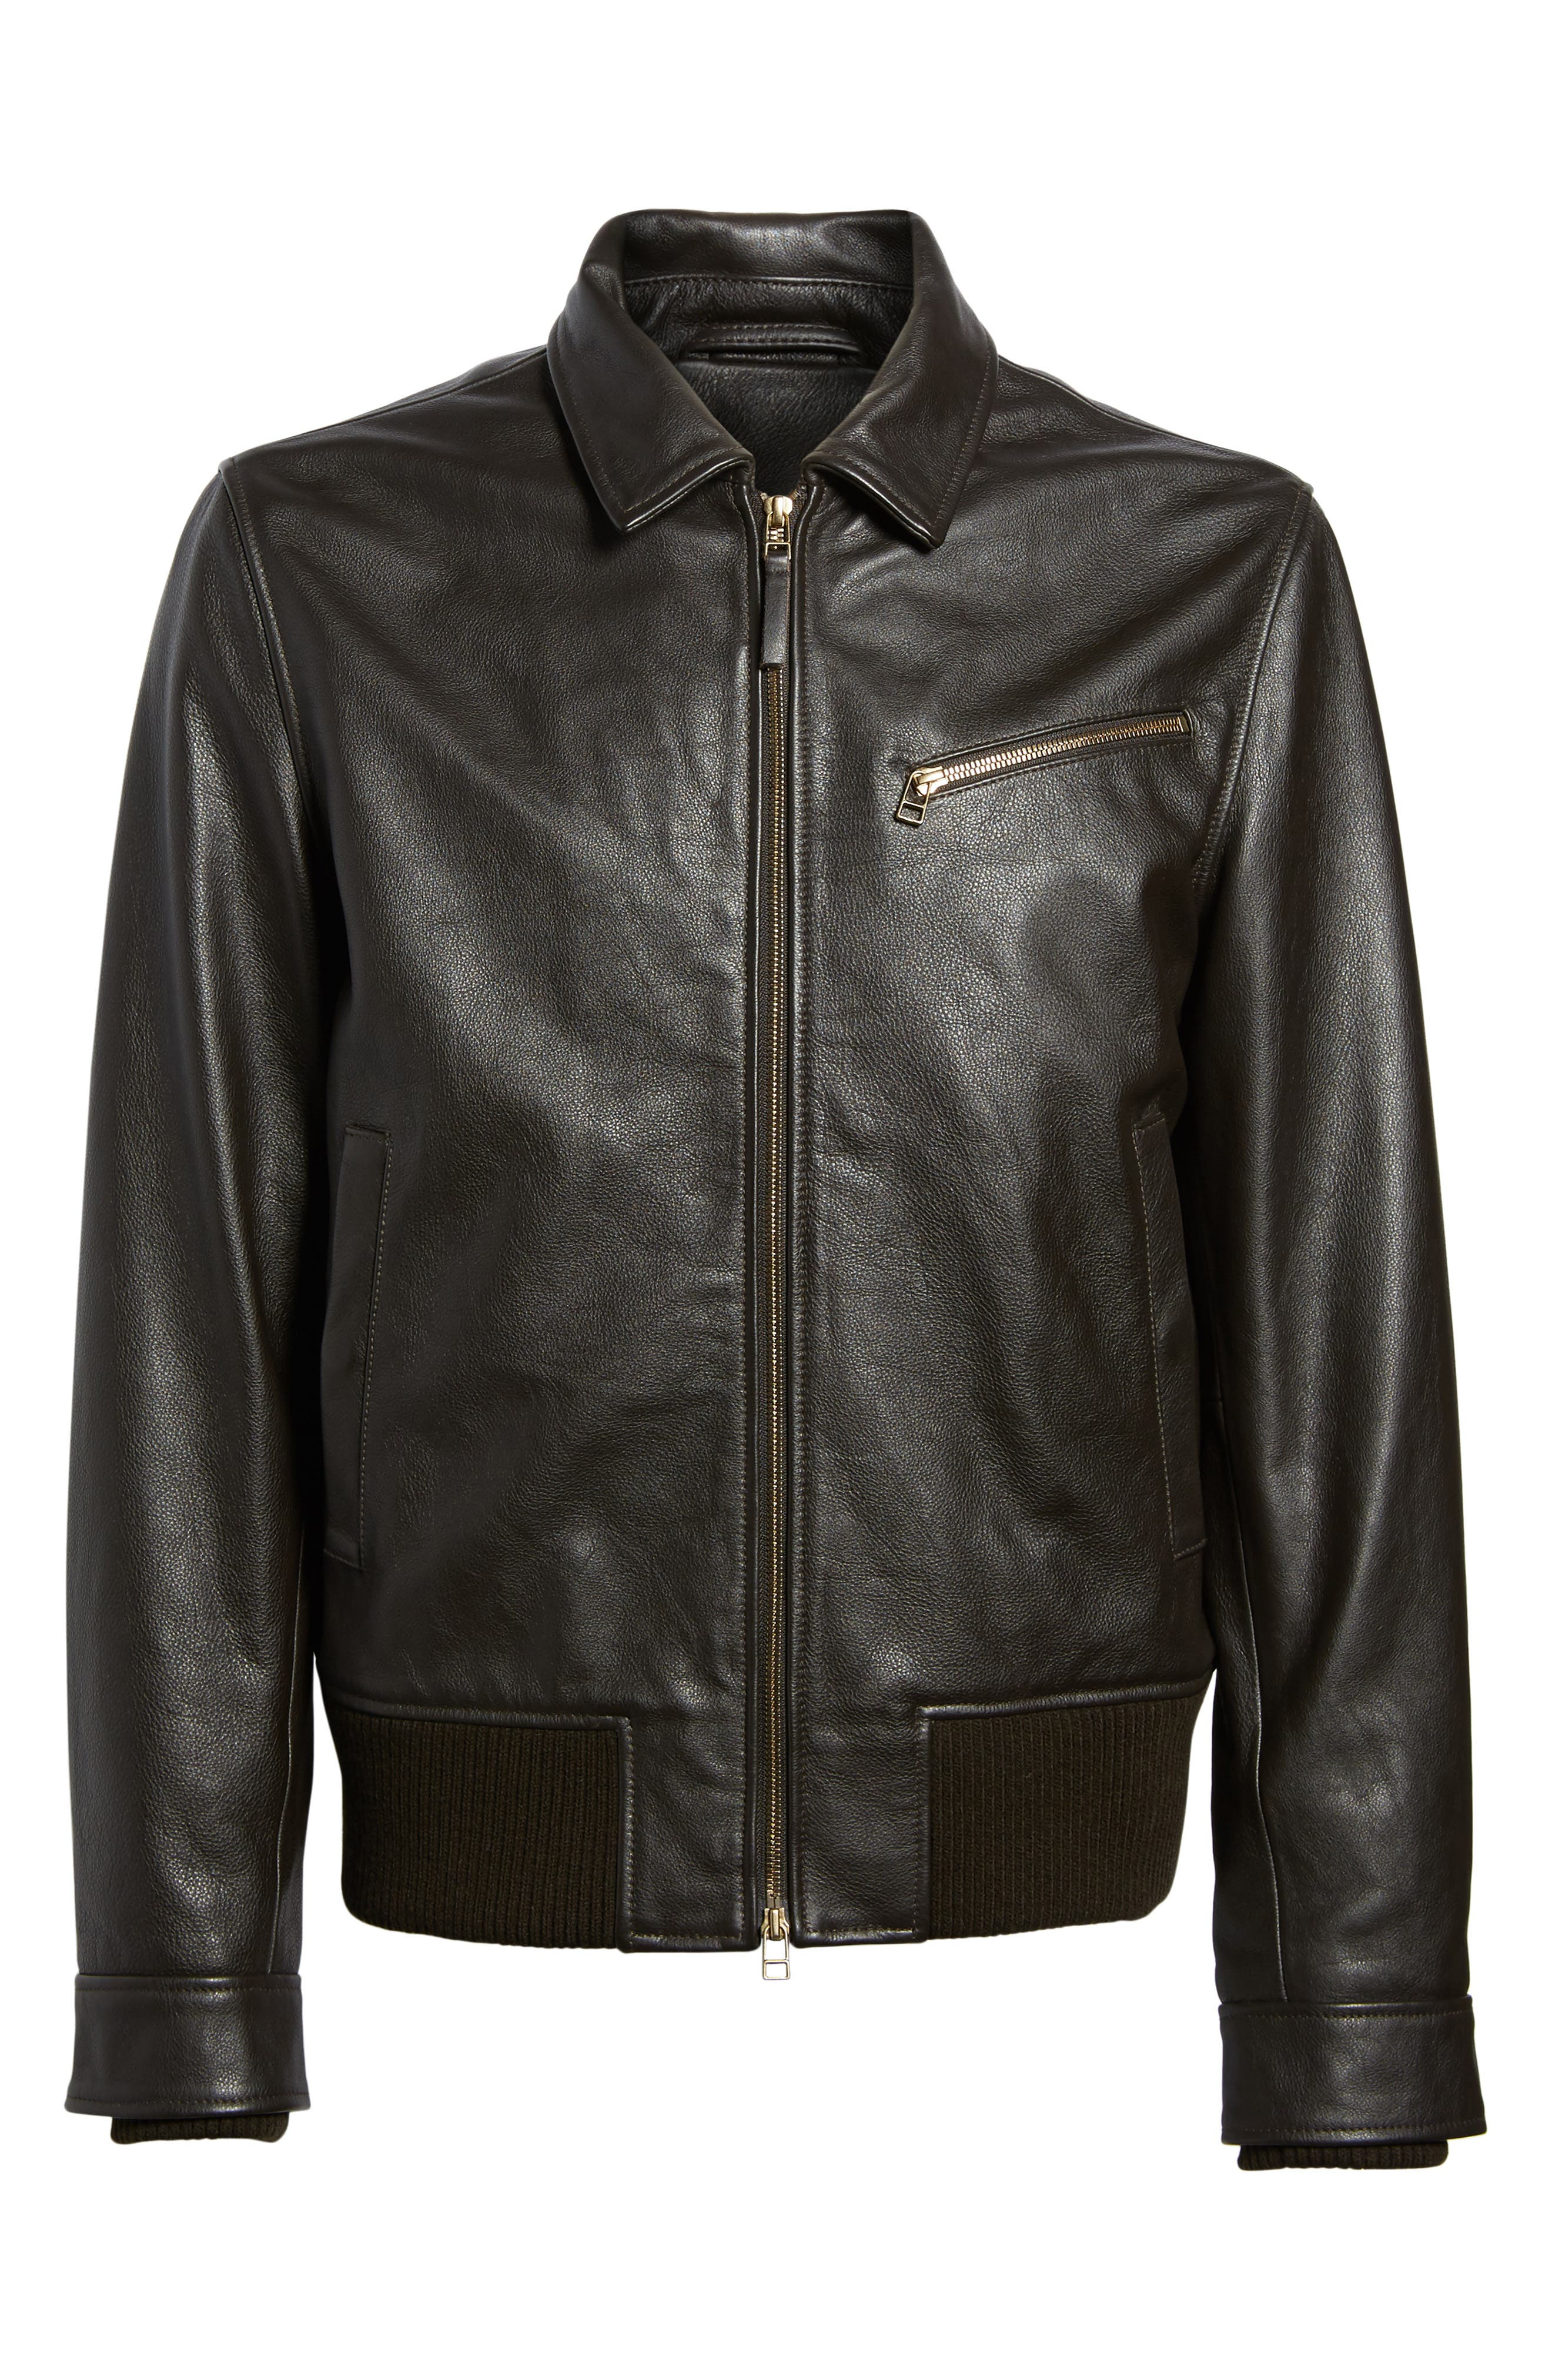 Year Round Leather Jacket,                             Alternate thumbnail 5, color,